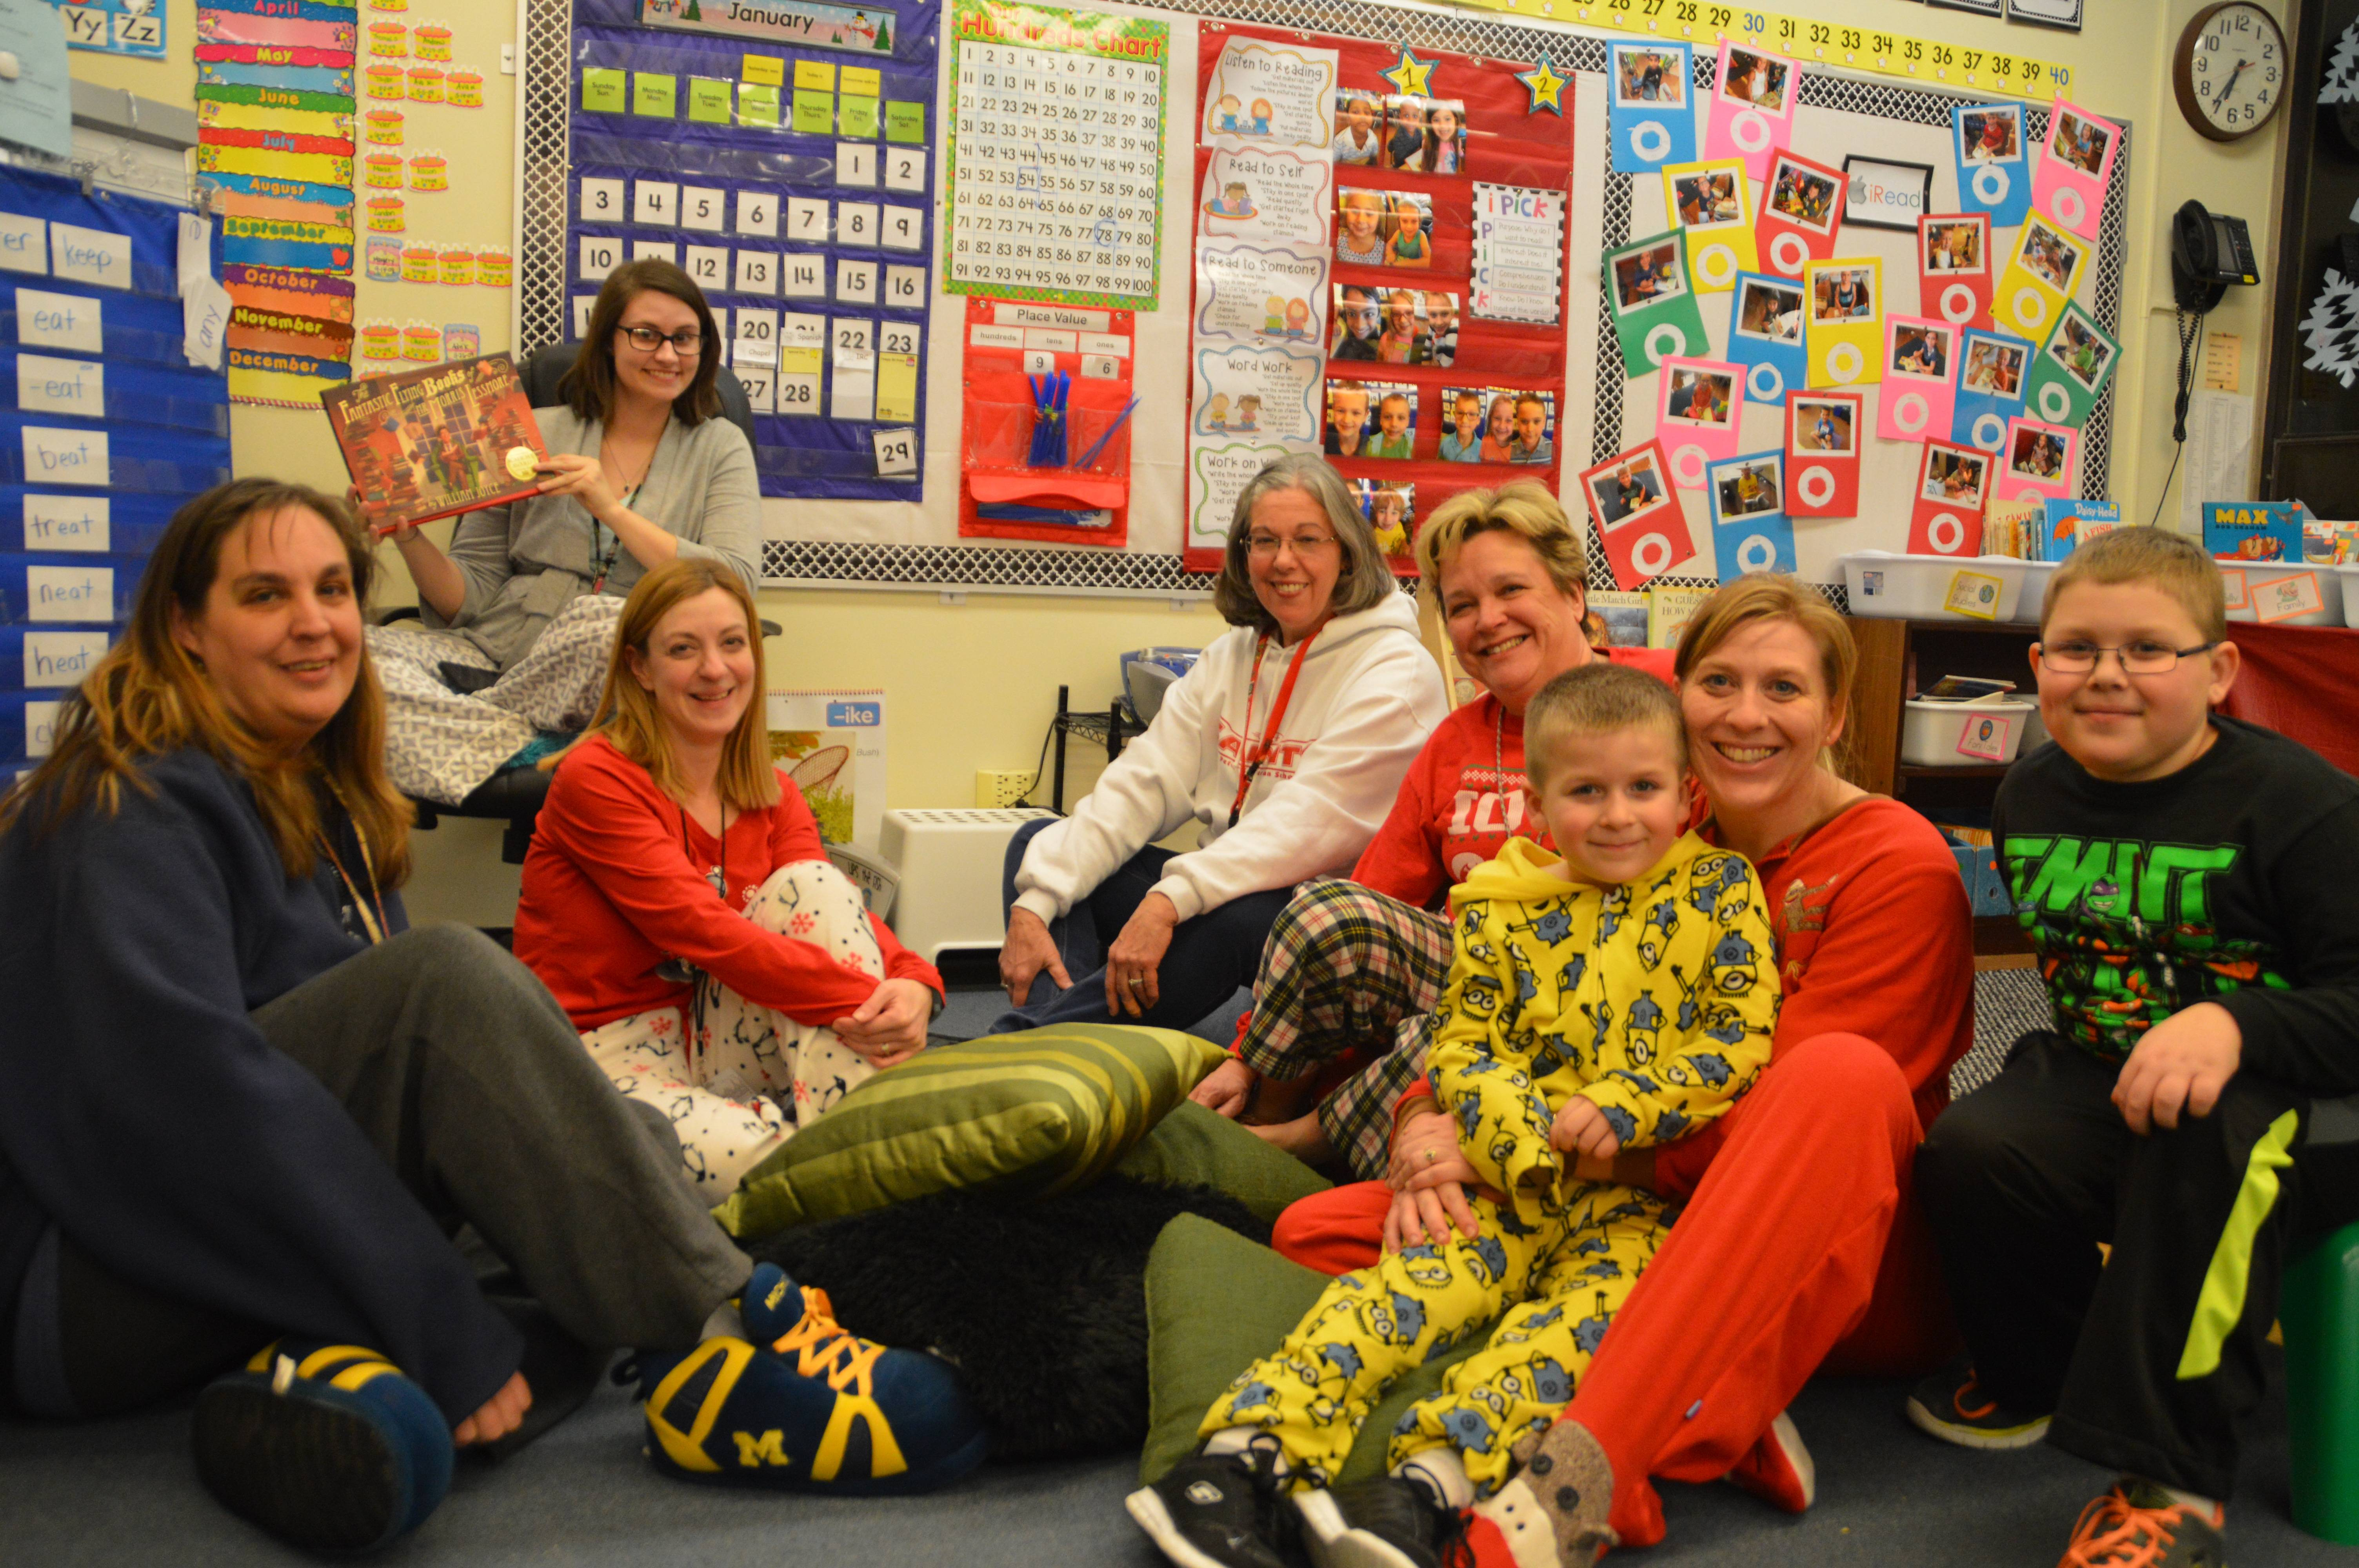 Teachers and students enjoy the Pajama Party room at St. Peter Lutheran School's Family Reading Night